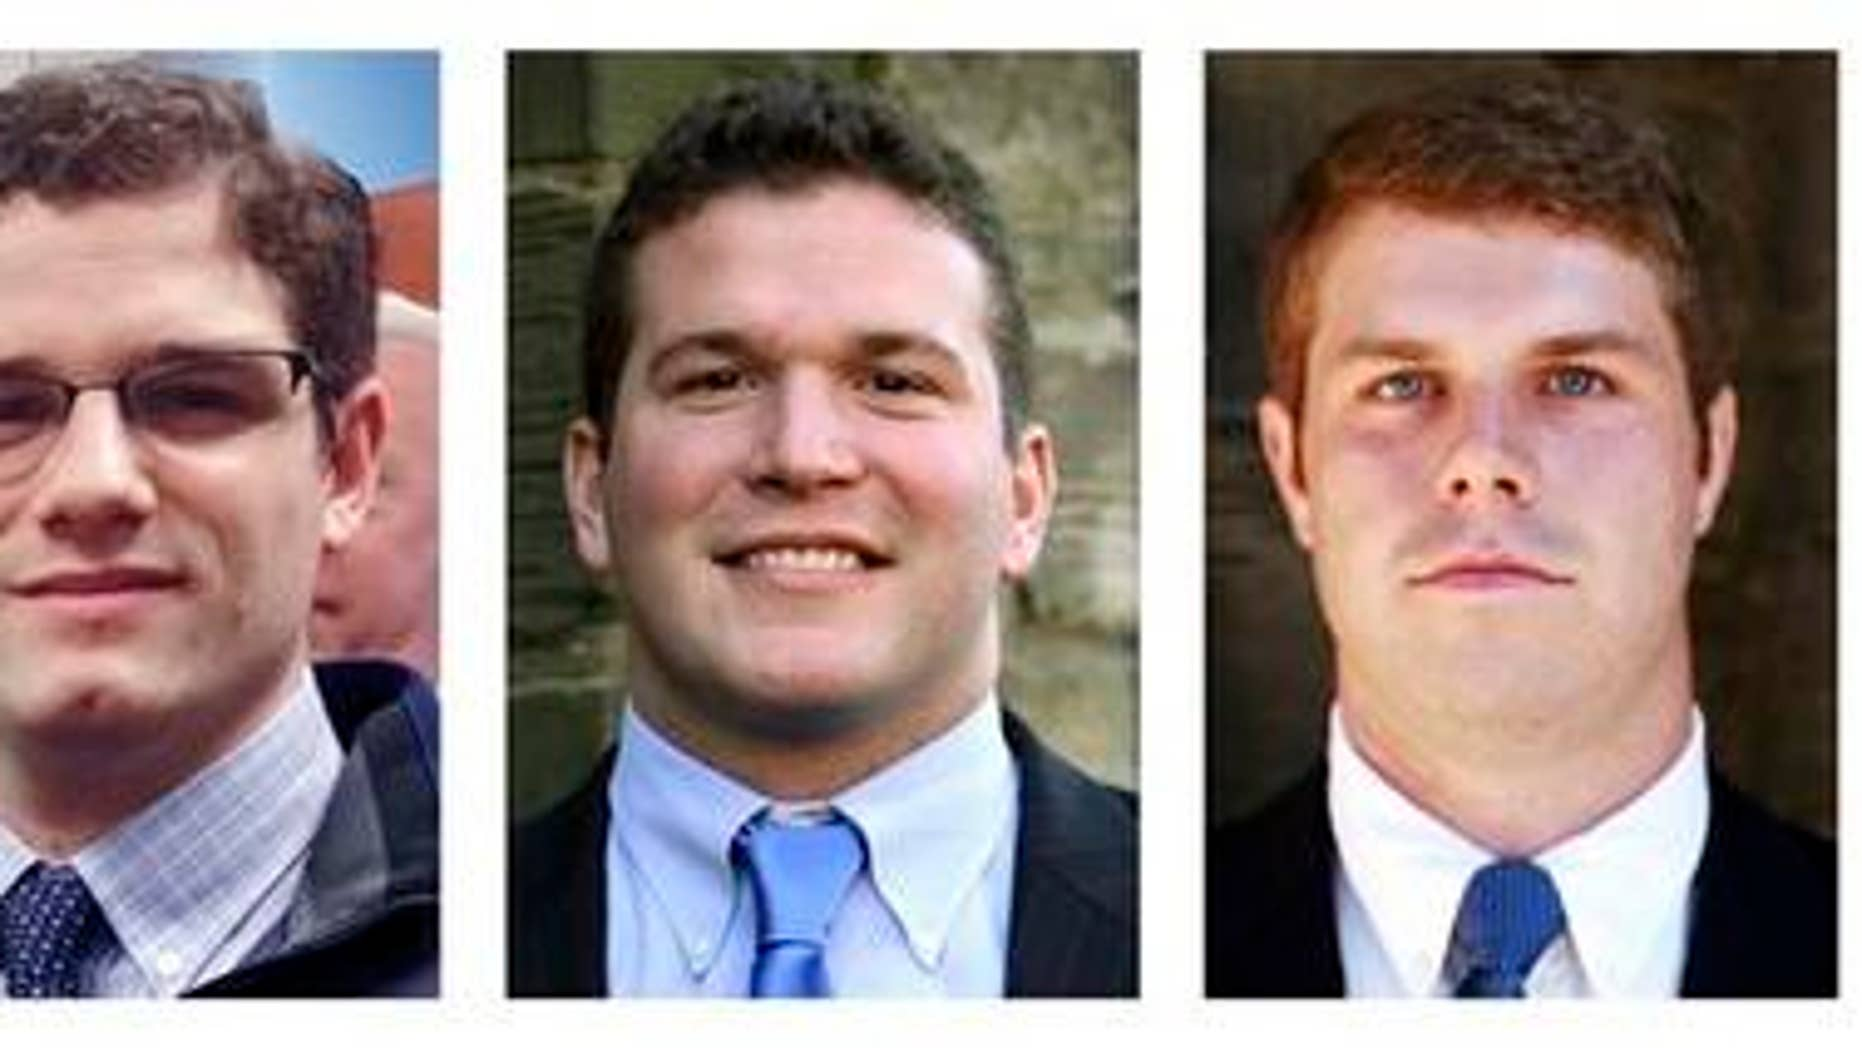 March 5, 2015: This panel of photos released by Yale University in New Haven, Conn., shows Chris Gennaro, left, Paul Rice, center, and Zach Wigmore.